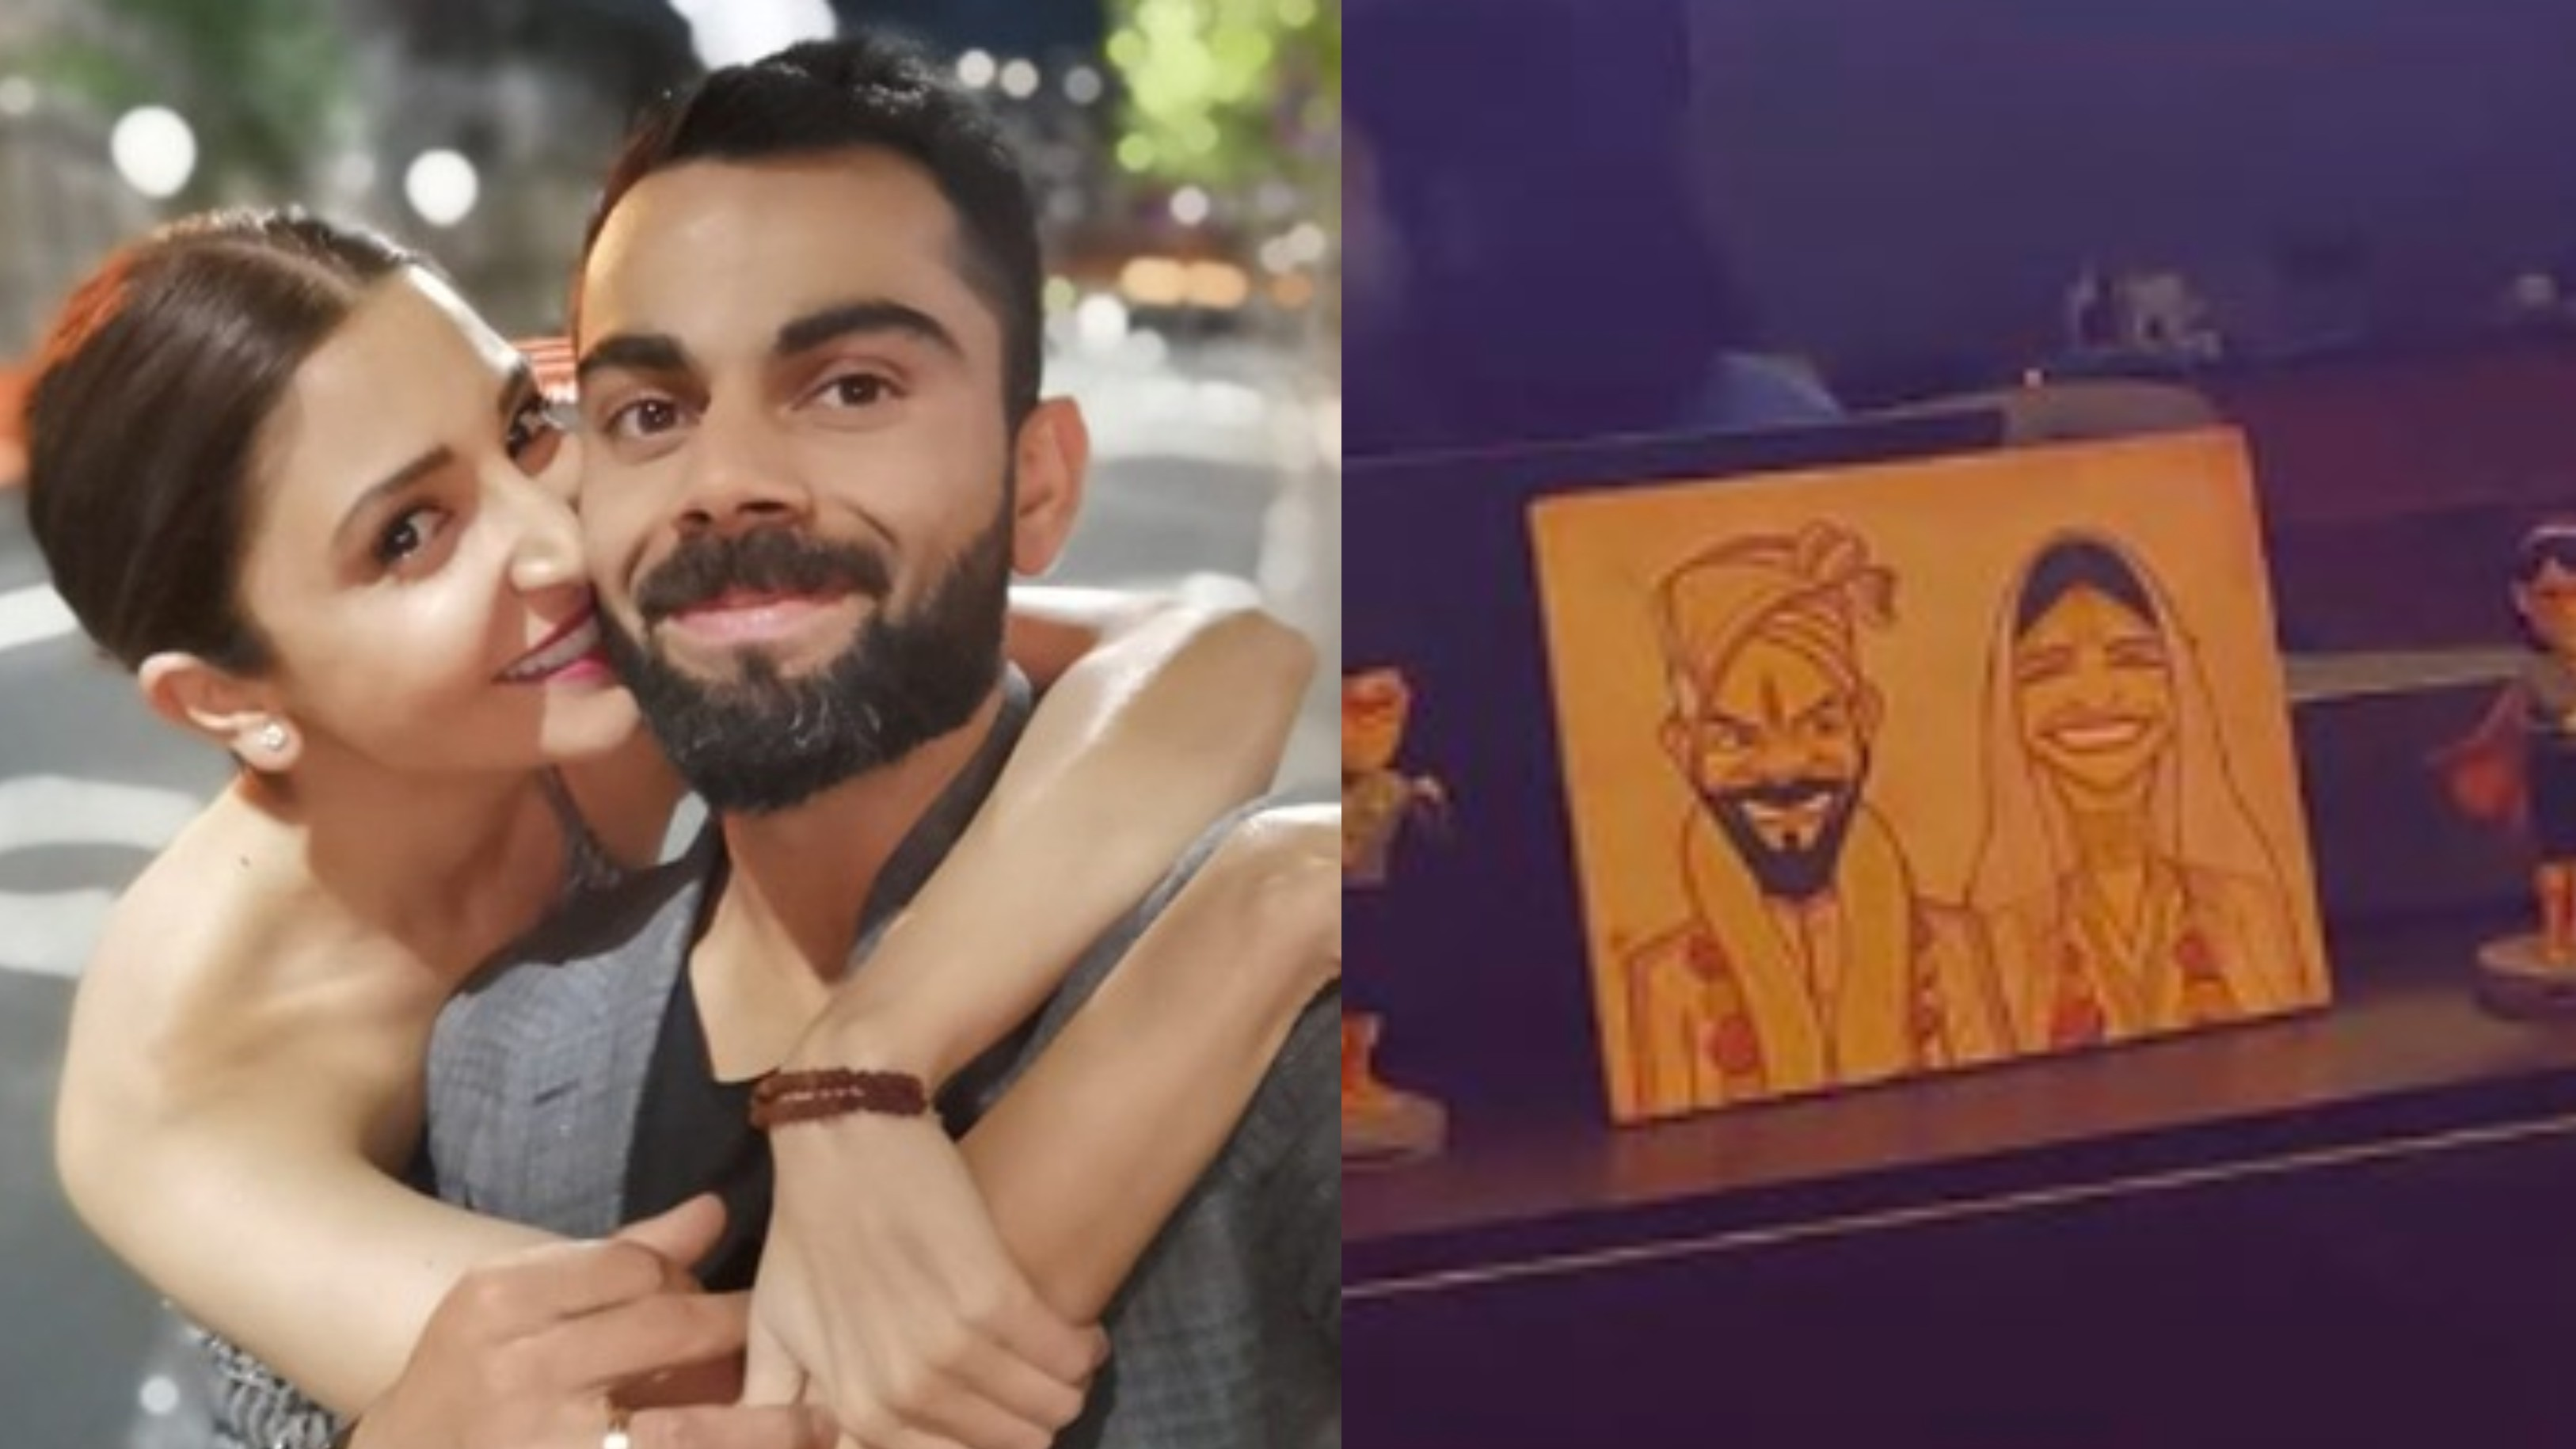 Virat Kohli And Anushka Sharma's wedding caricature creates buzz among fans